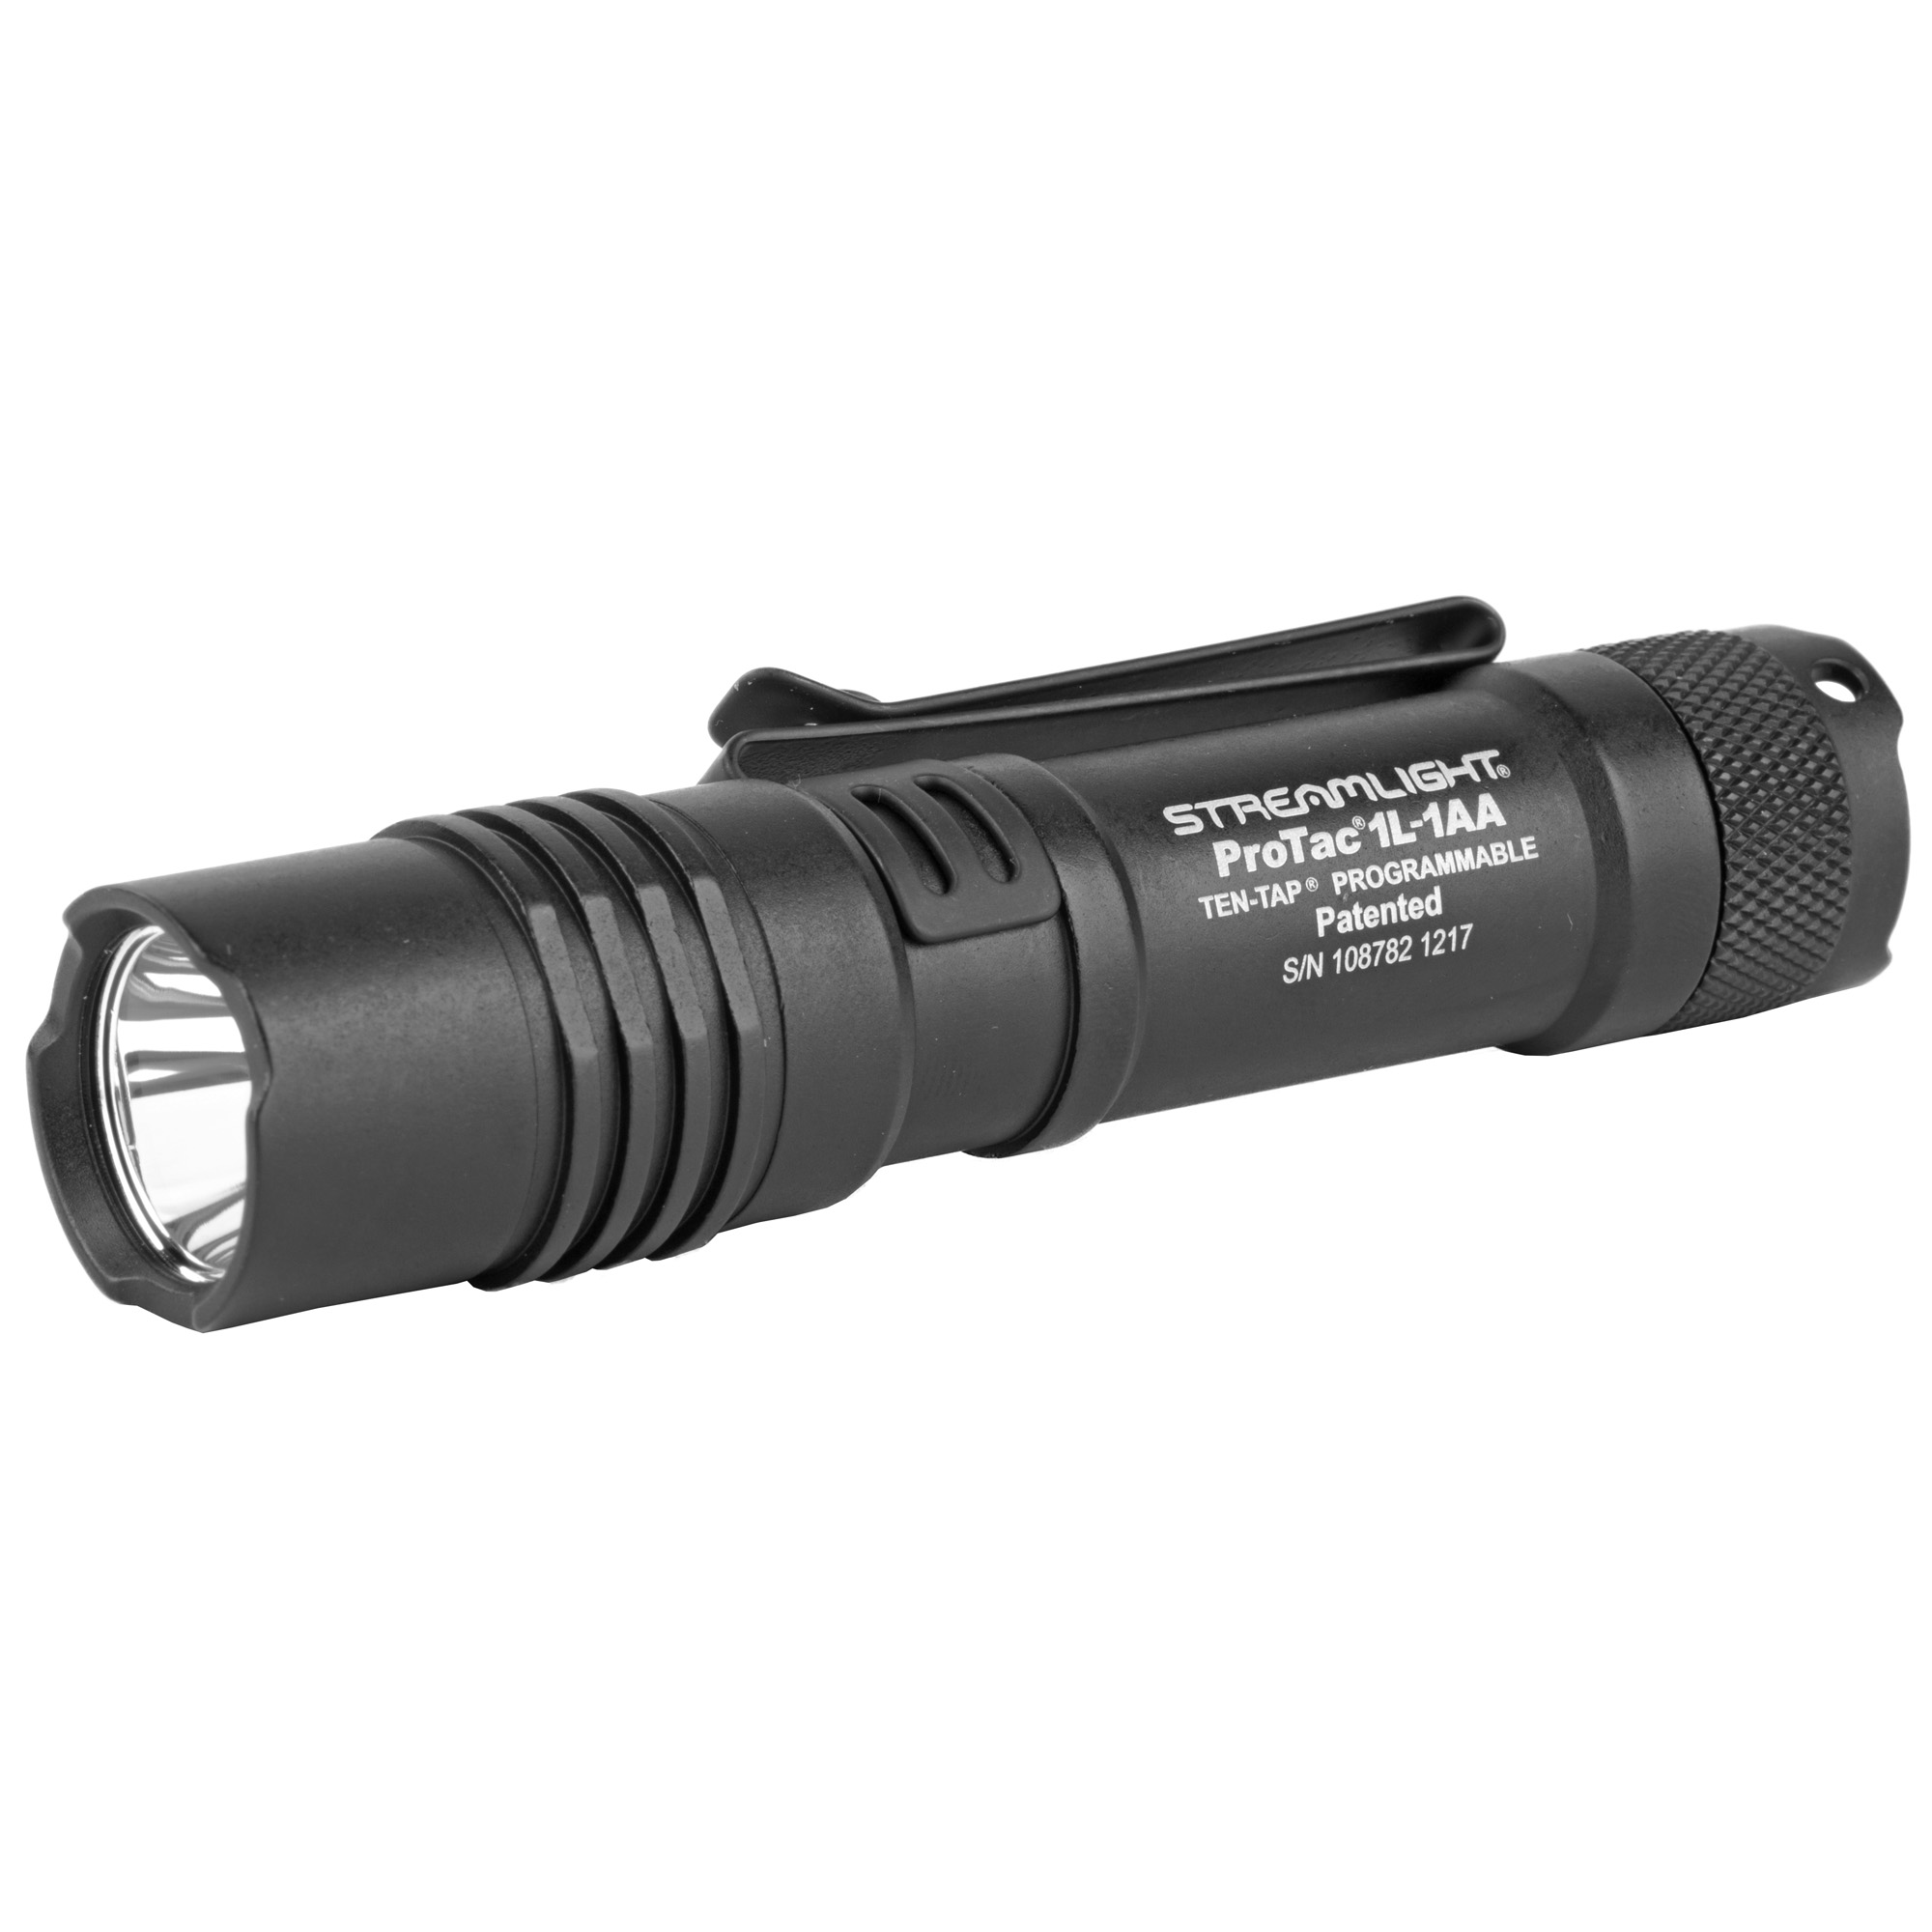 "The ProTac 1L-1AA is a perfect everyday carry light. This dual fuel ultra-compact flashlight accepts a single lithium or alkaline battery"" providing you with ultimate flexibility in the field."